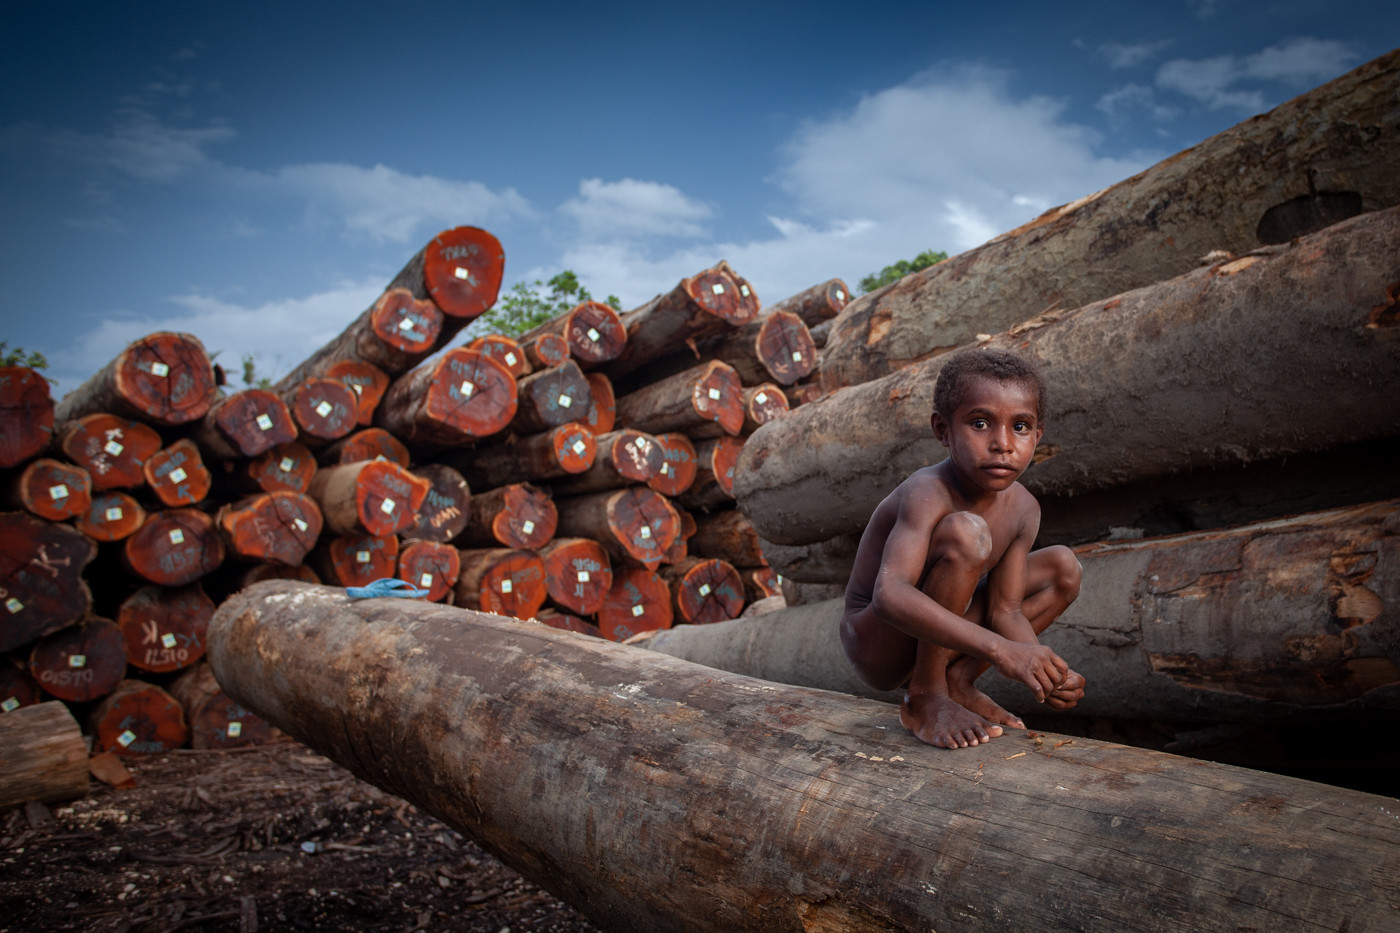 Young Papuan boy plays in the lumber yard as forklifts come to take the enormous trees to be loaded onto barges for export overseas.